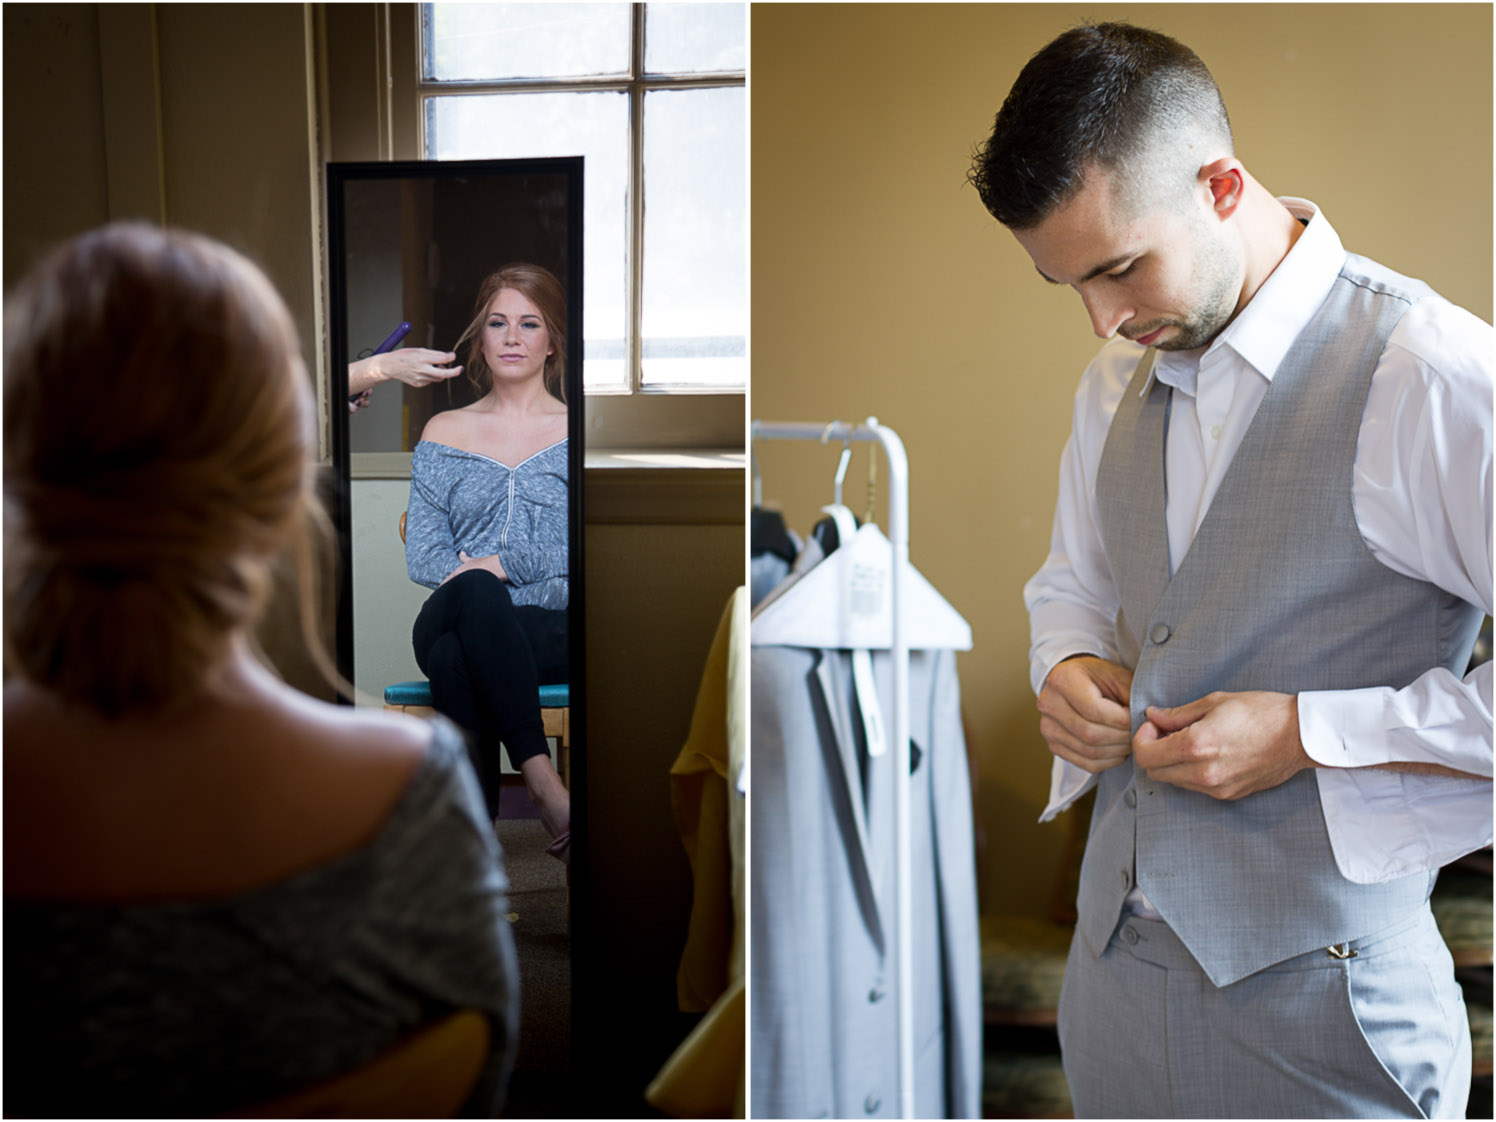 04-hope-community-church-wedding-ceremony-bride-groom-getting-ready-mahonen-photography.jpg